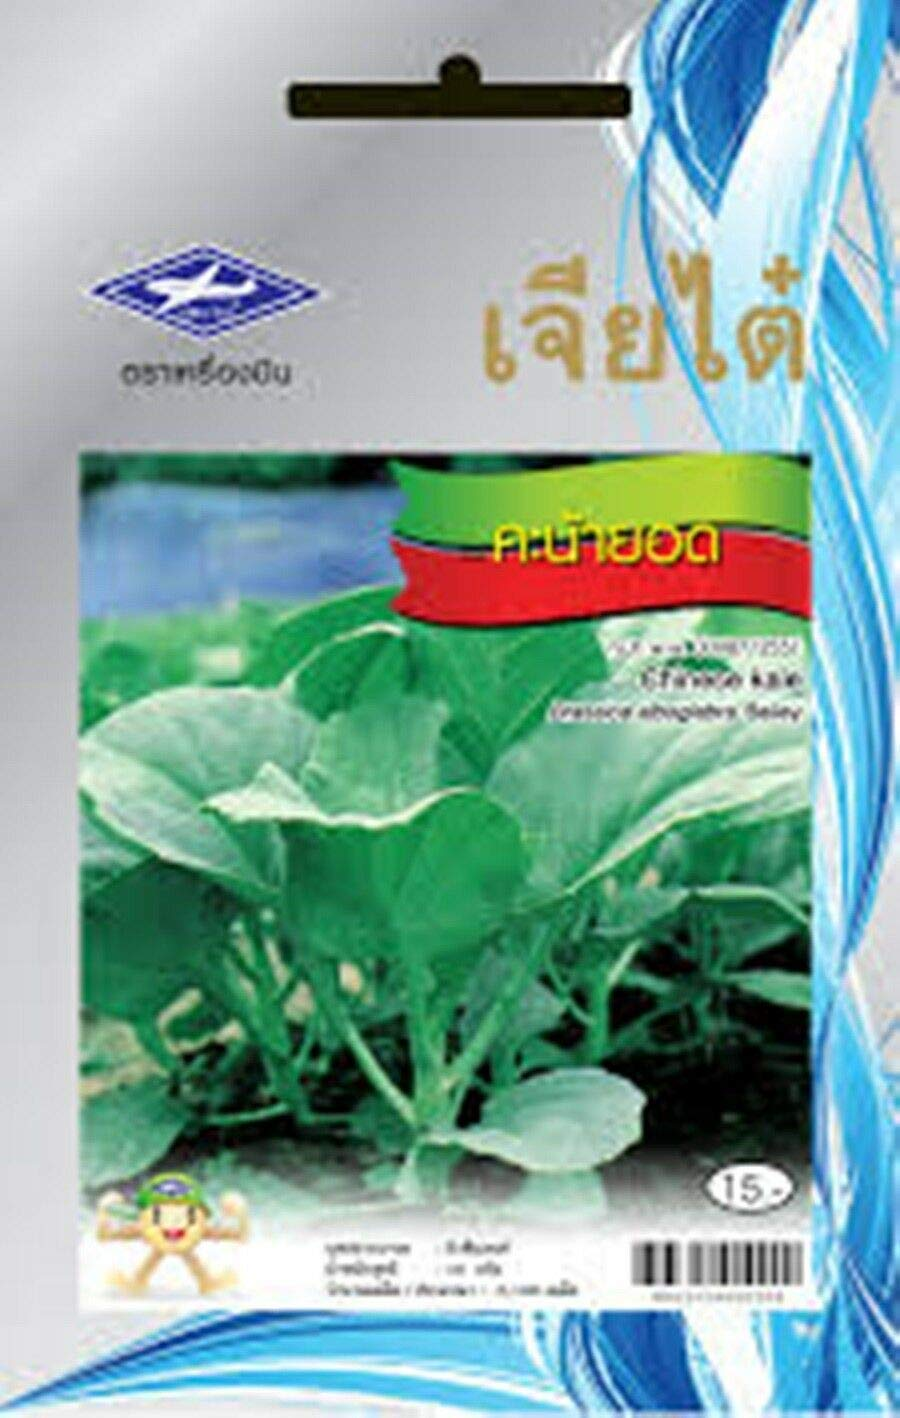 Seeds Package: 1 Pack : 2190 Seeds Kale Thai Vegetable Seeds Home Garden Health Chia Tai